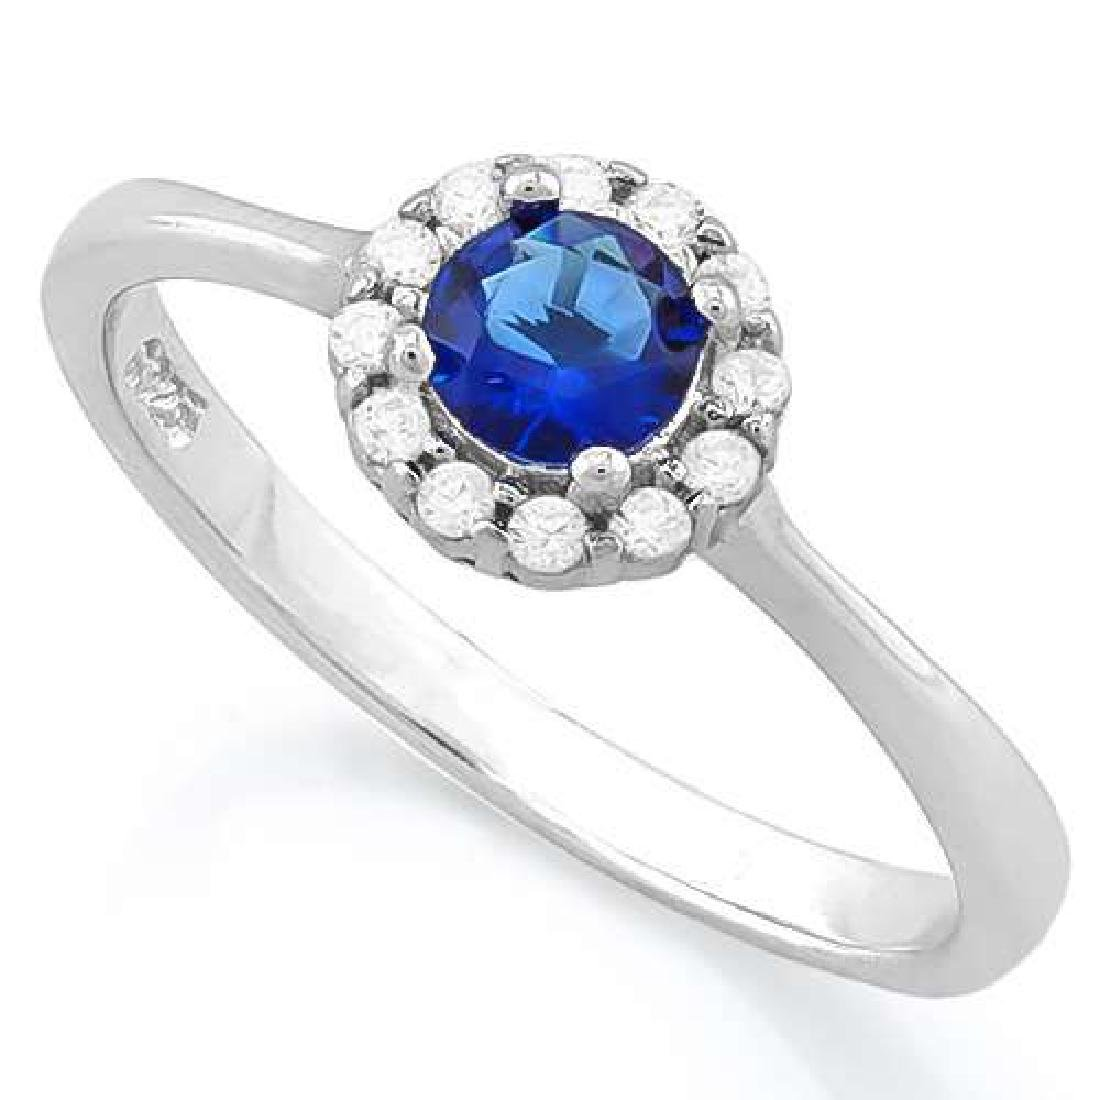 1/2 CTW CREATED BLUE SAPPHIRE & (12 PCS) FLAWLESS CREAT